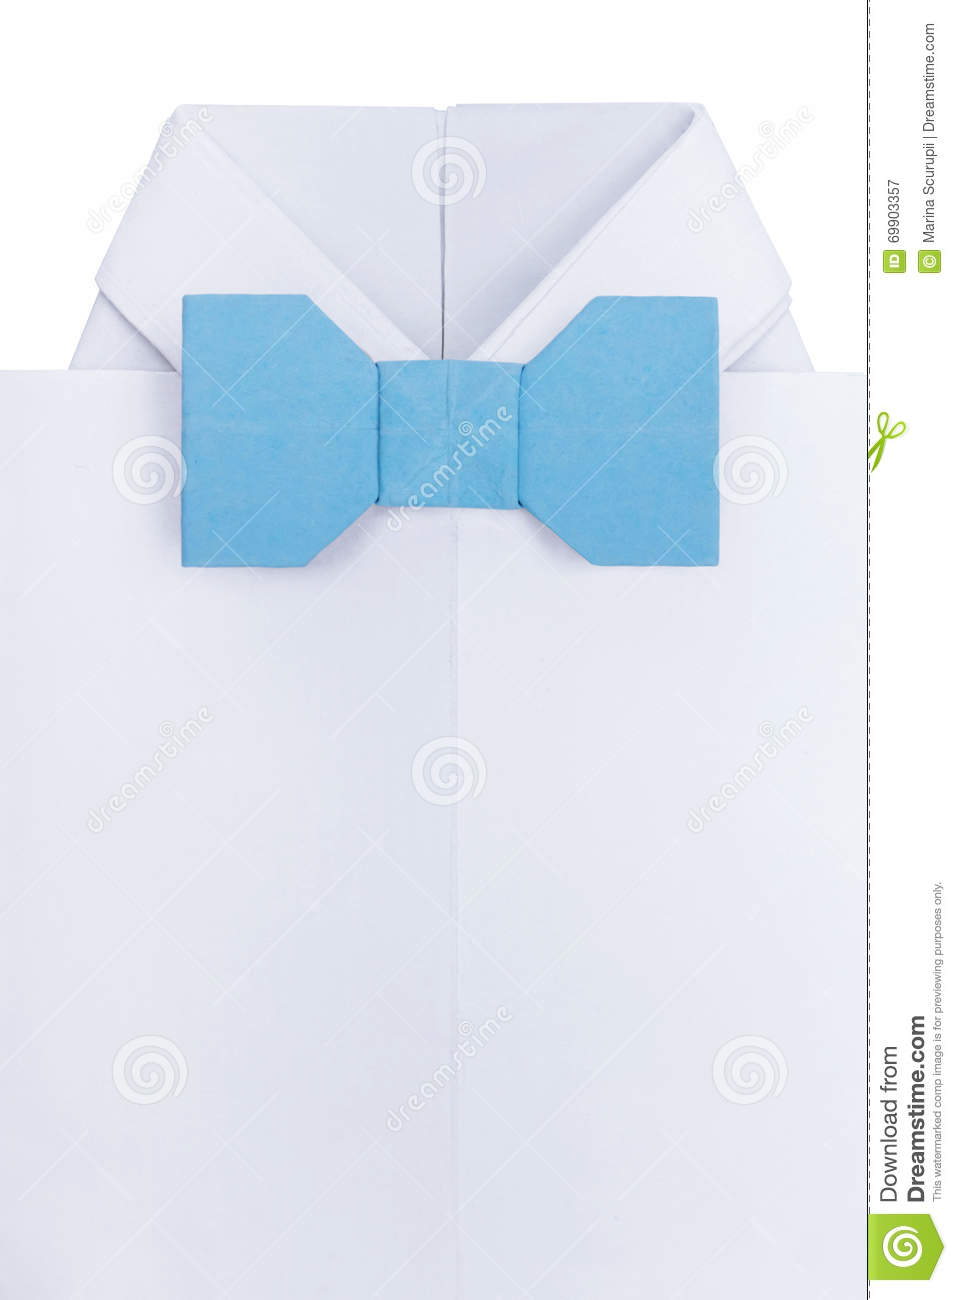 Origami Shirt With Bow Tie Stock Image Image Of Event 69903357